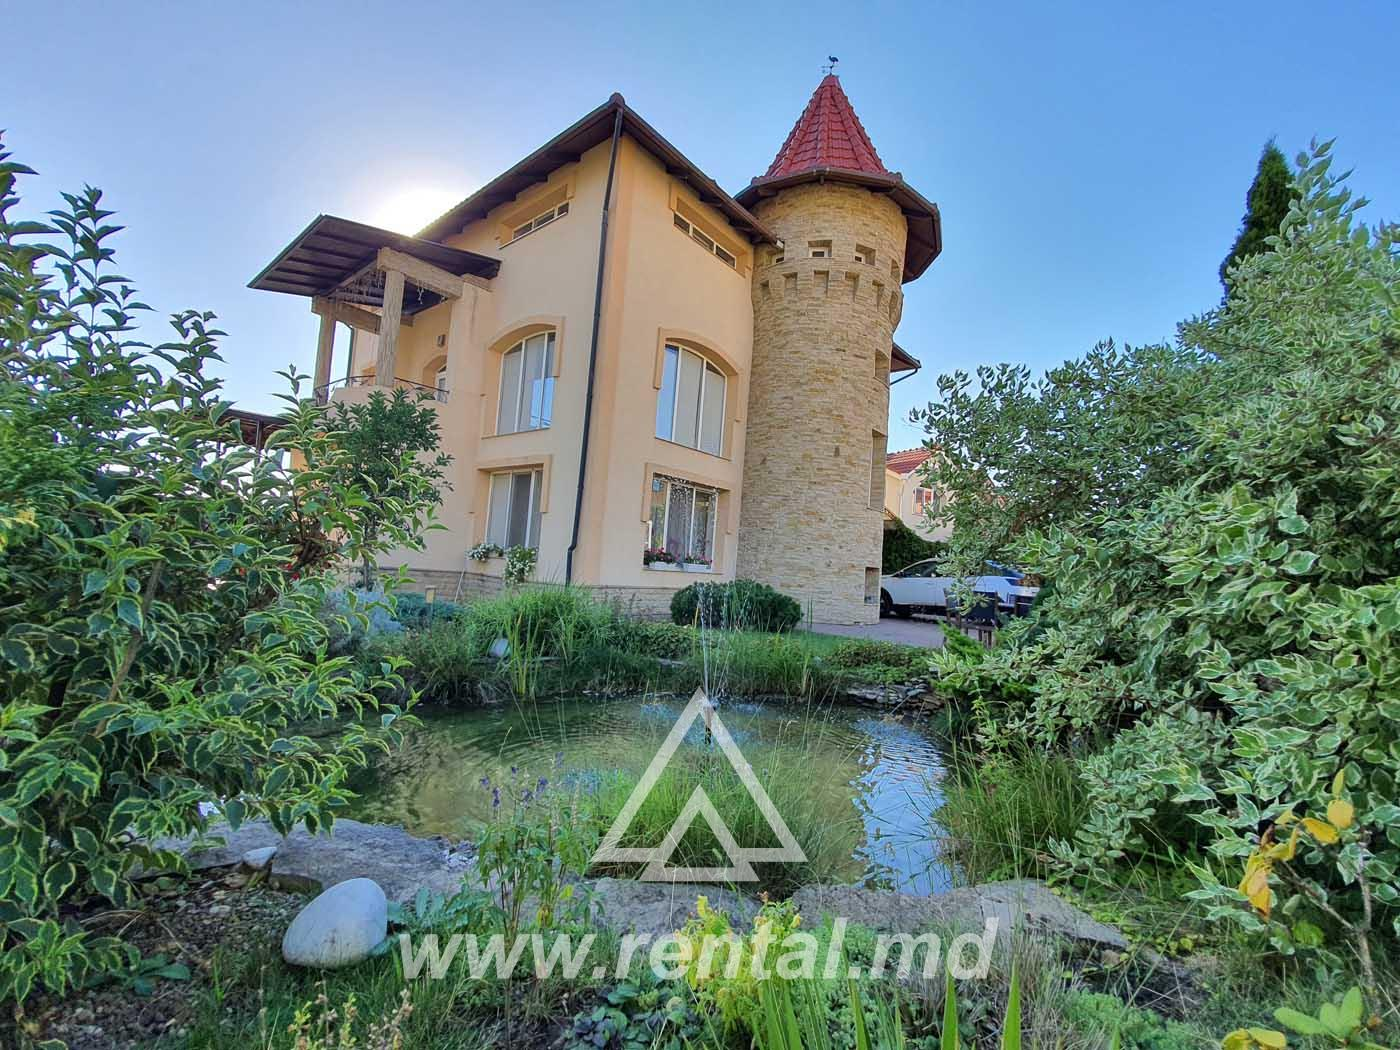 House for rent or sale in Chisinau